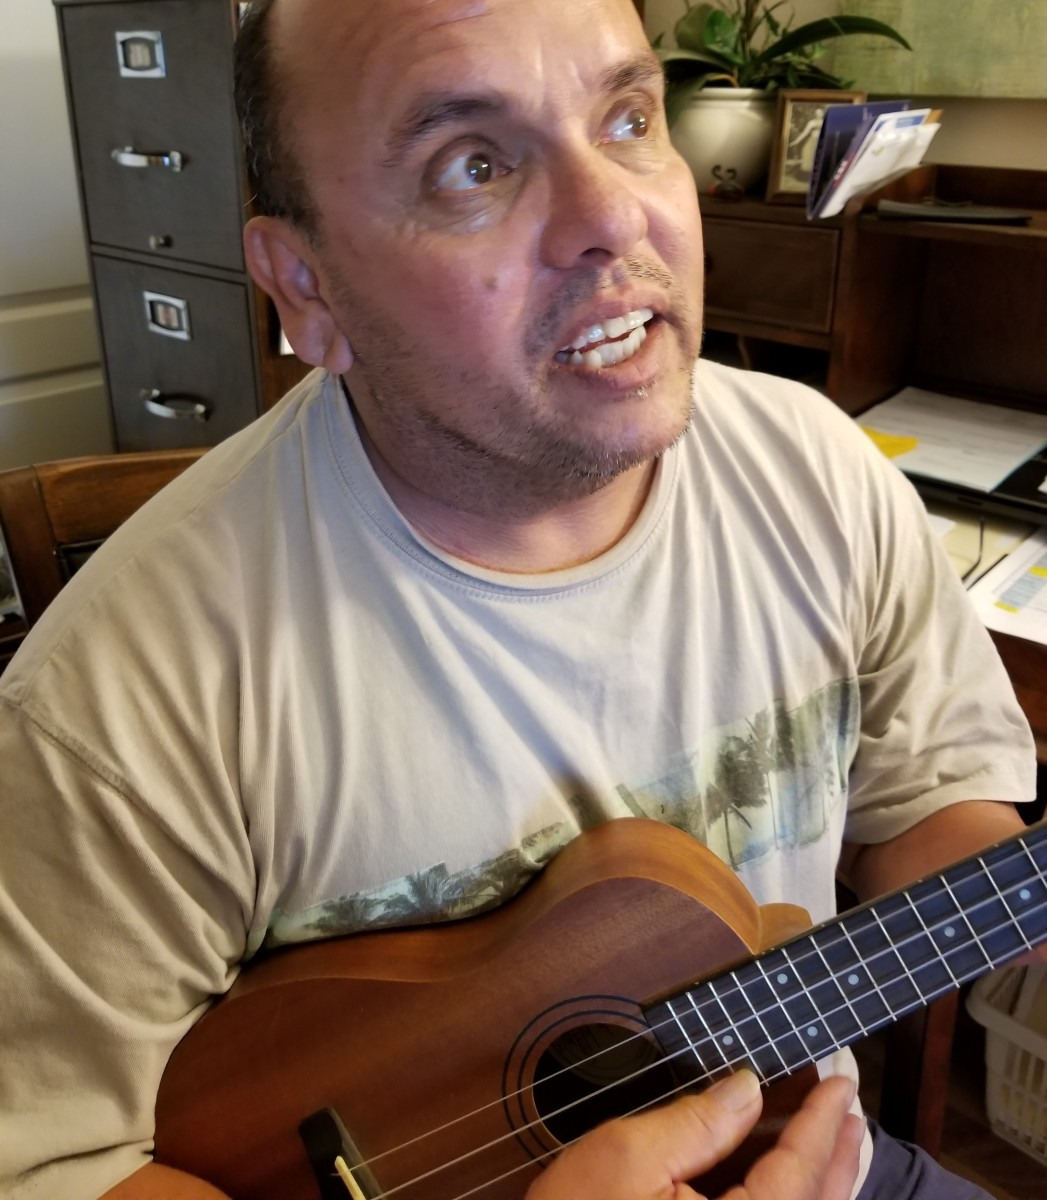 Singer, Jeff, singing along with his ukulele.